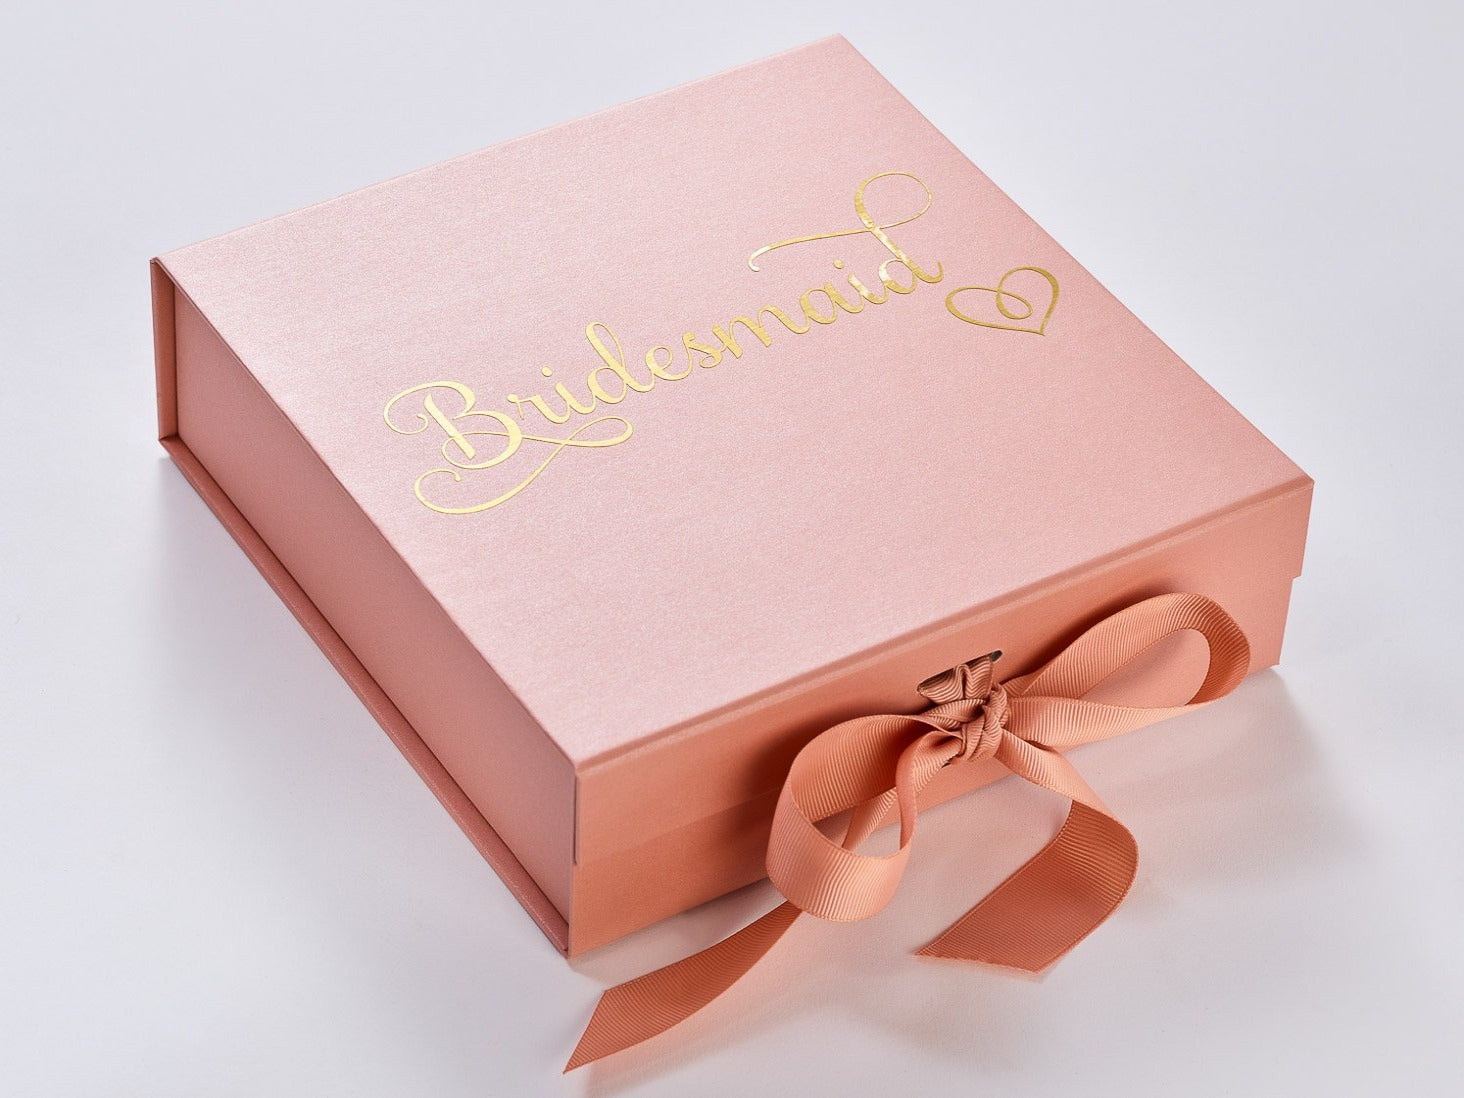 Rose Gold Luxury Gift Boxes and Wholesale Gift Packaging - FoldaBox USA